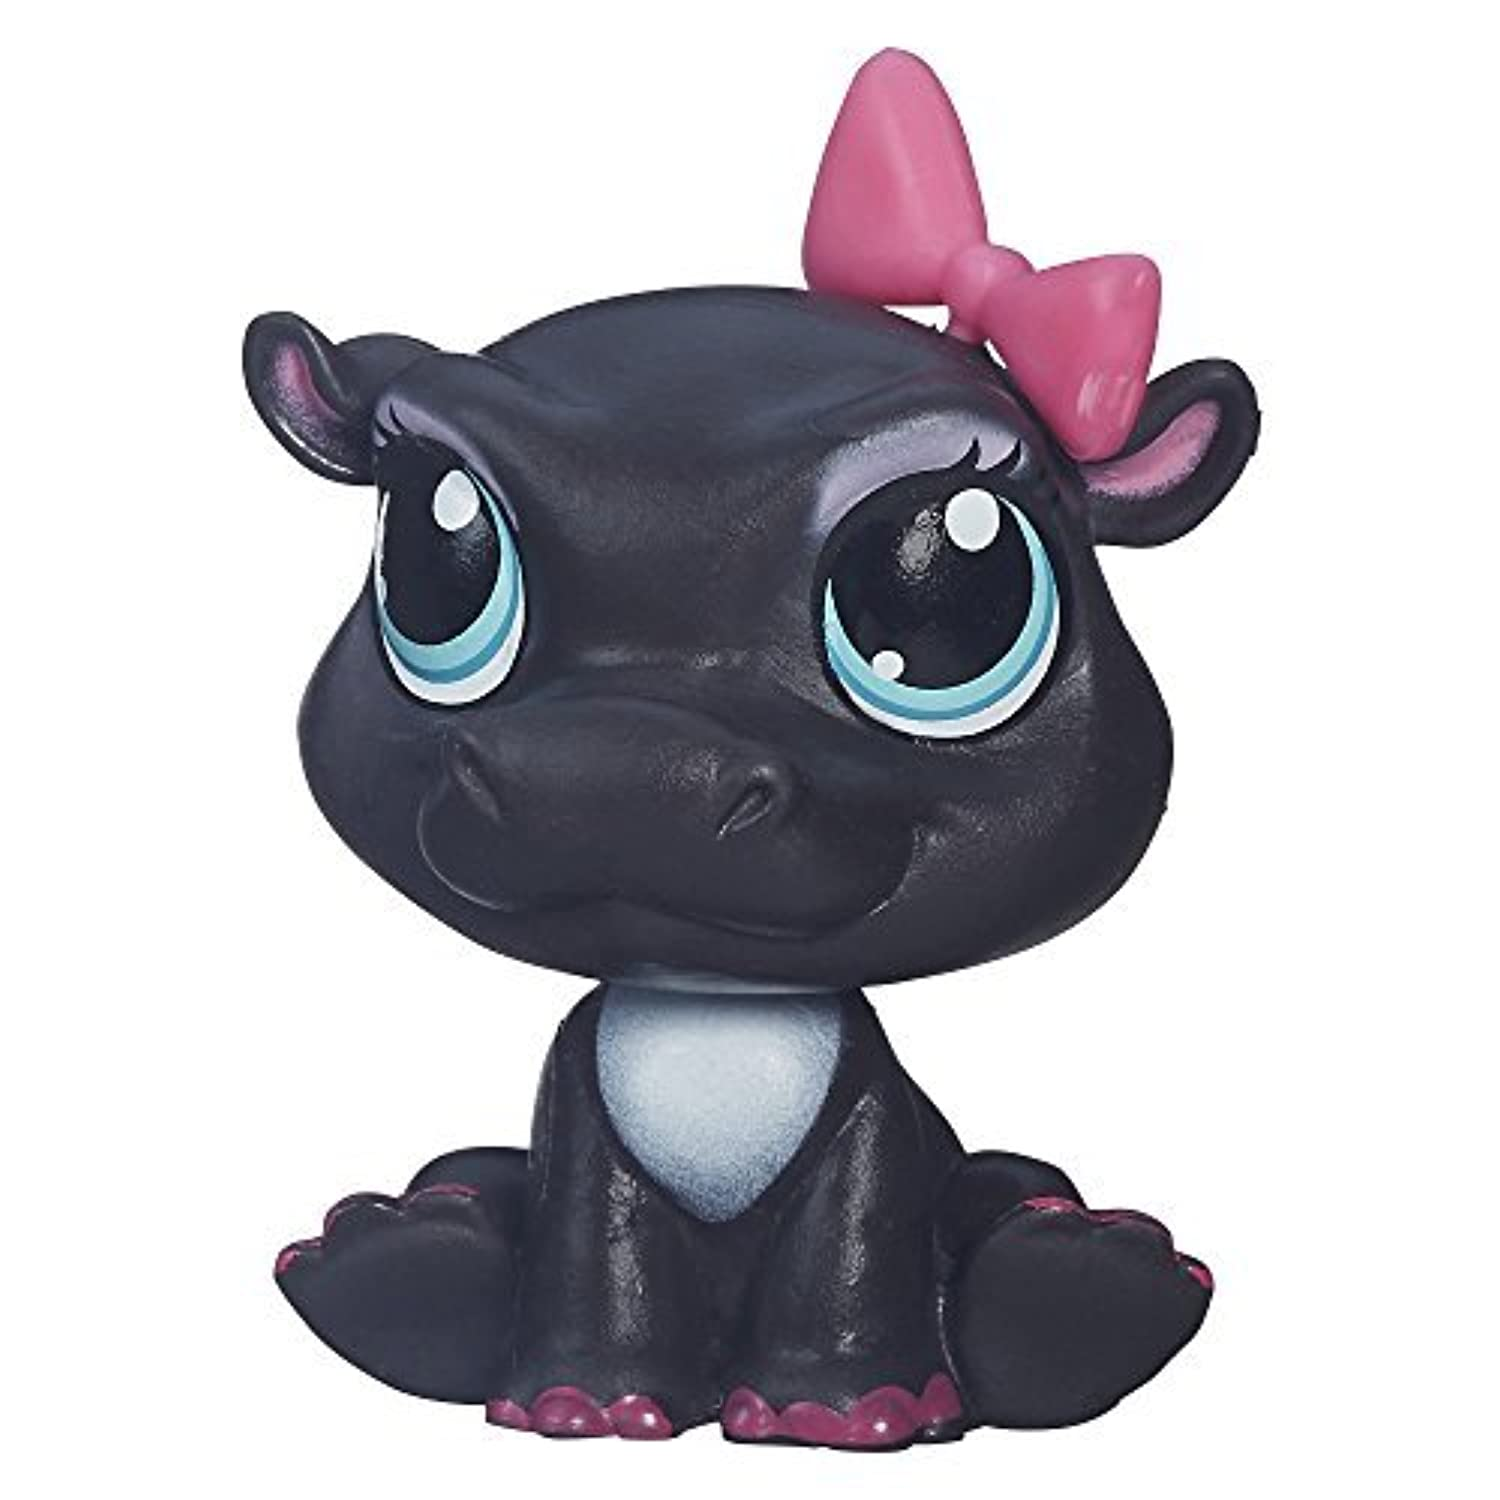 Littlest Pet Shop Get The Pets Single Pack Yolanda Yawnson Hippo 3956 by Littlest Pet Shop [並行輸入品]